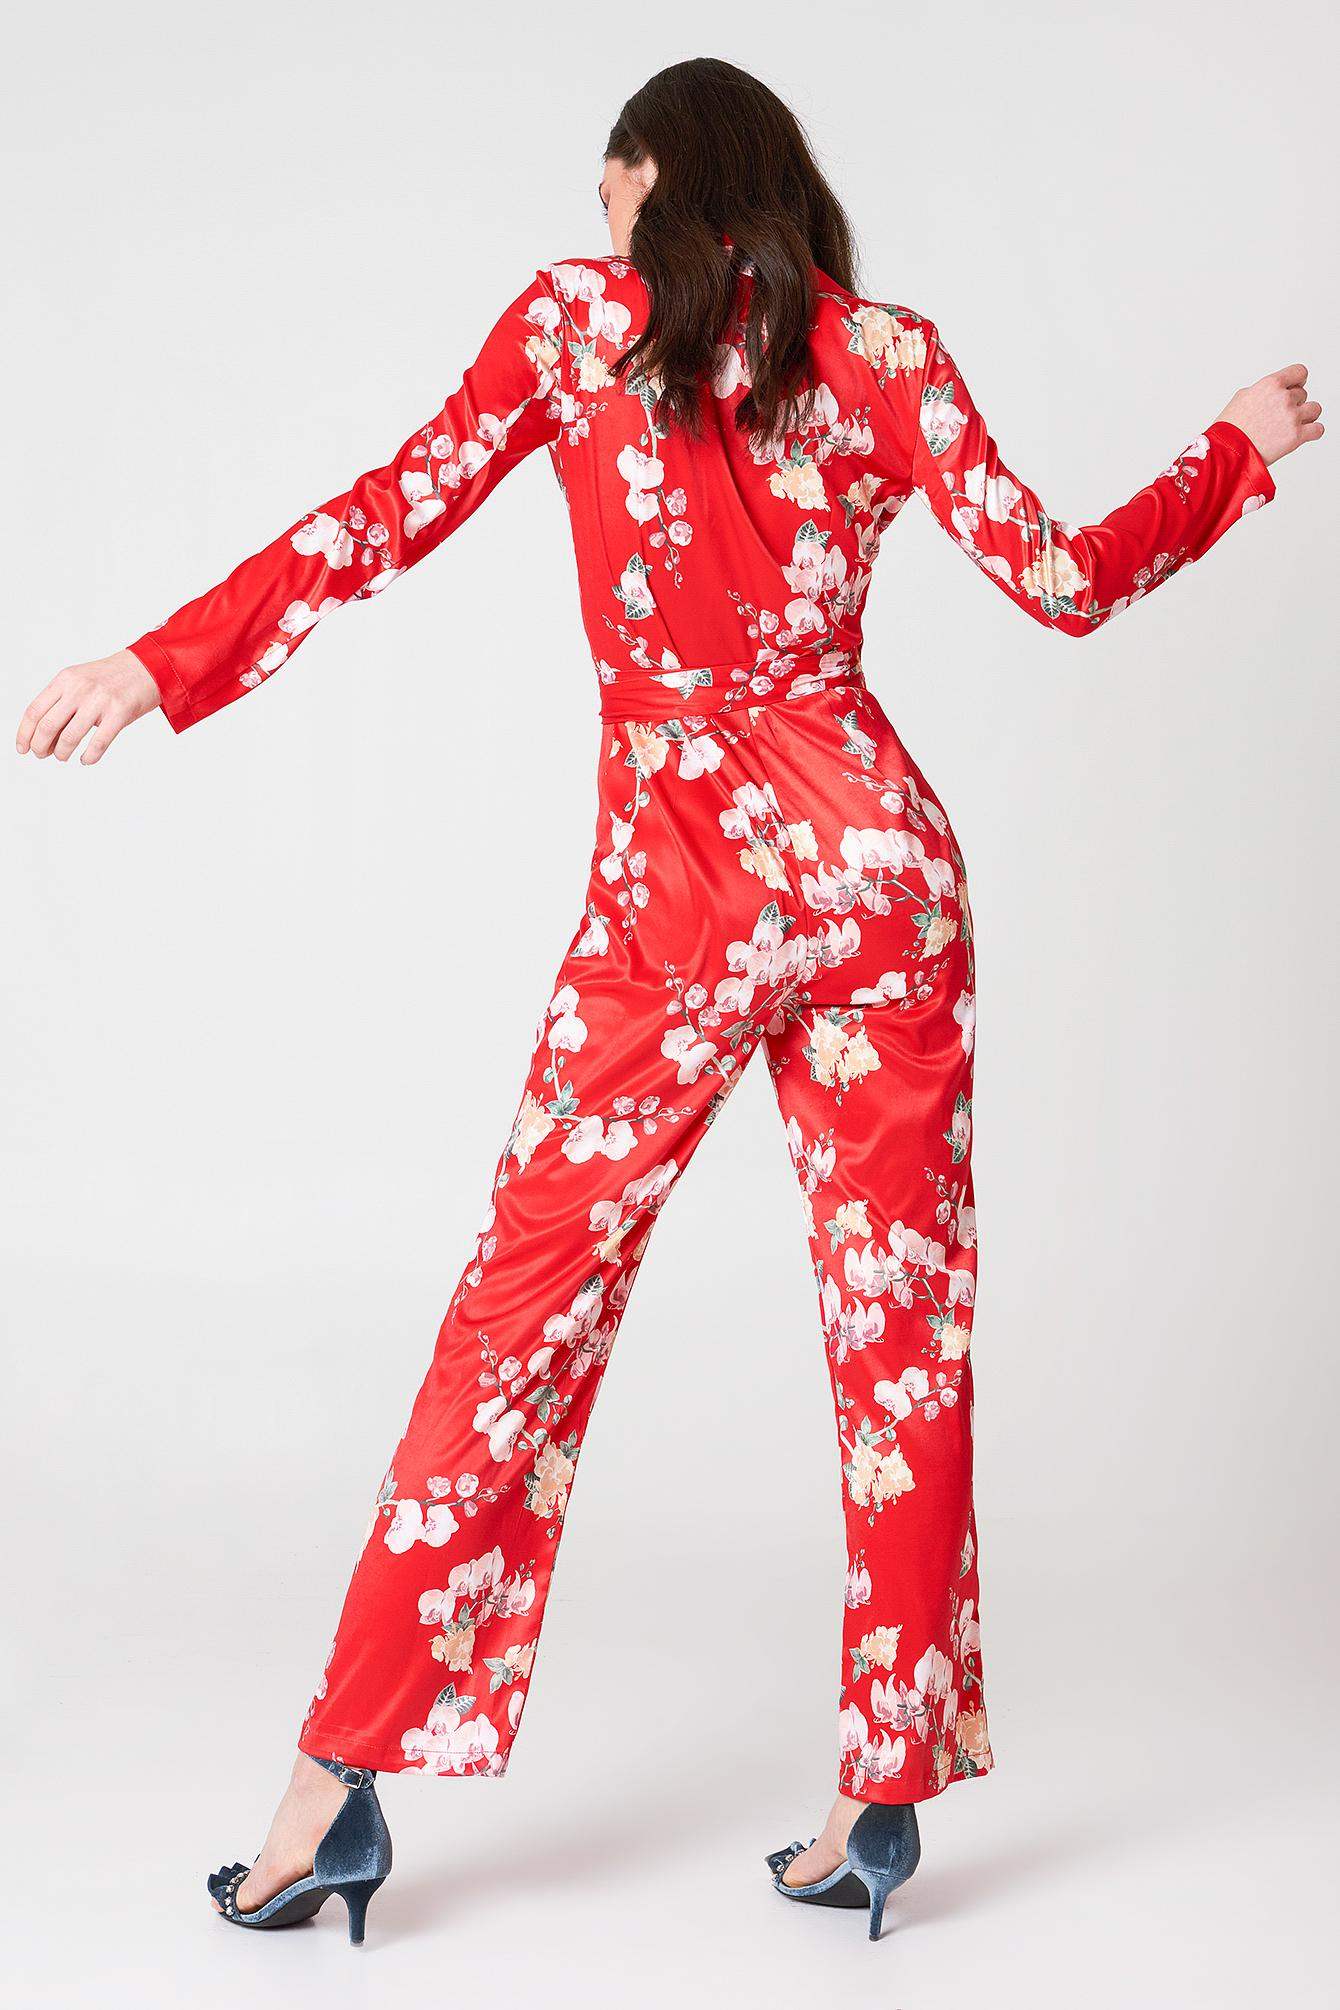 786aba99c1d7 NA-KD Blazer Satin Jumpsuit Red Orchid Print in Red - Lyst